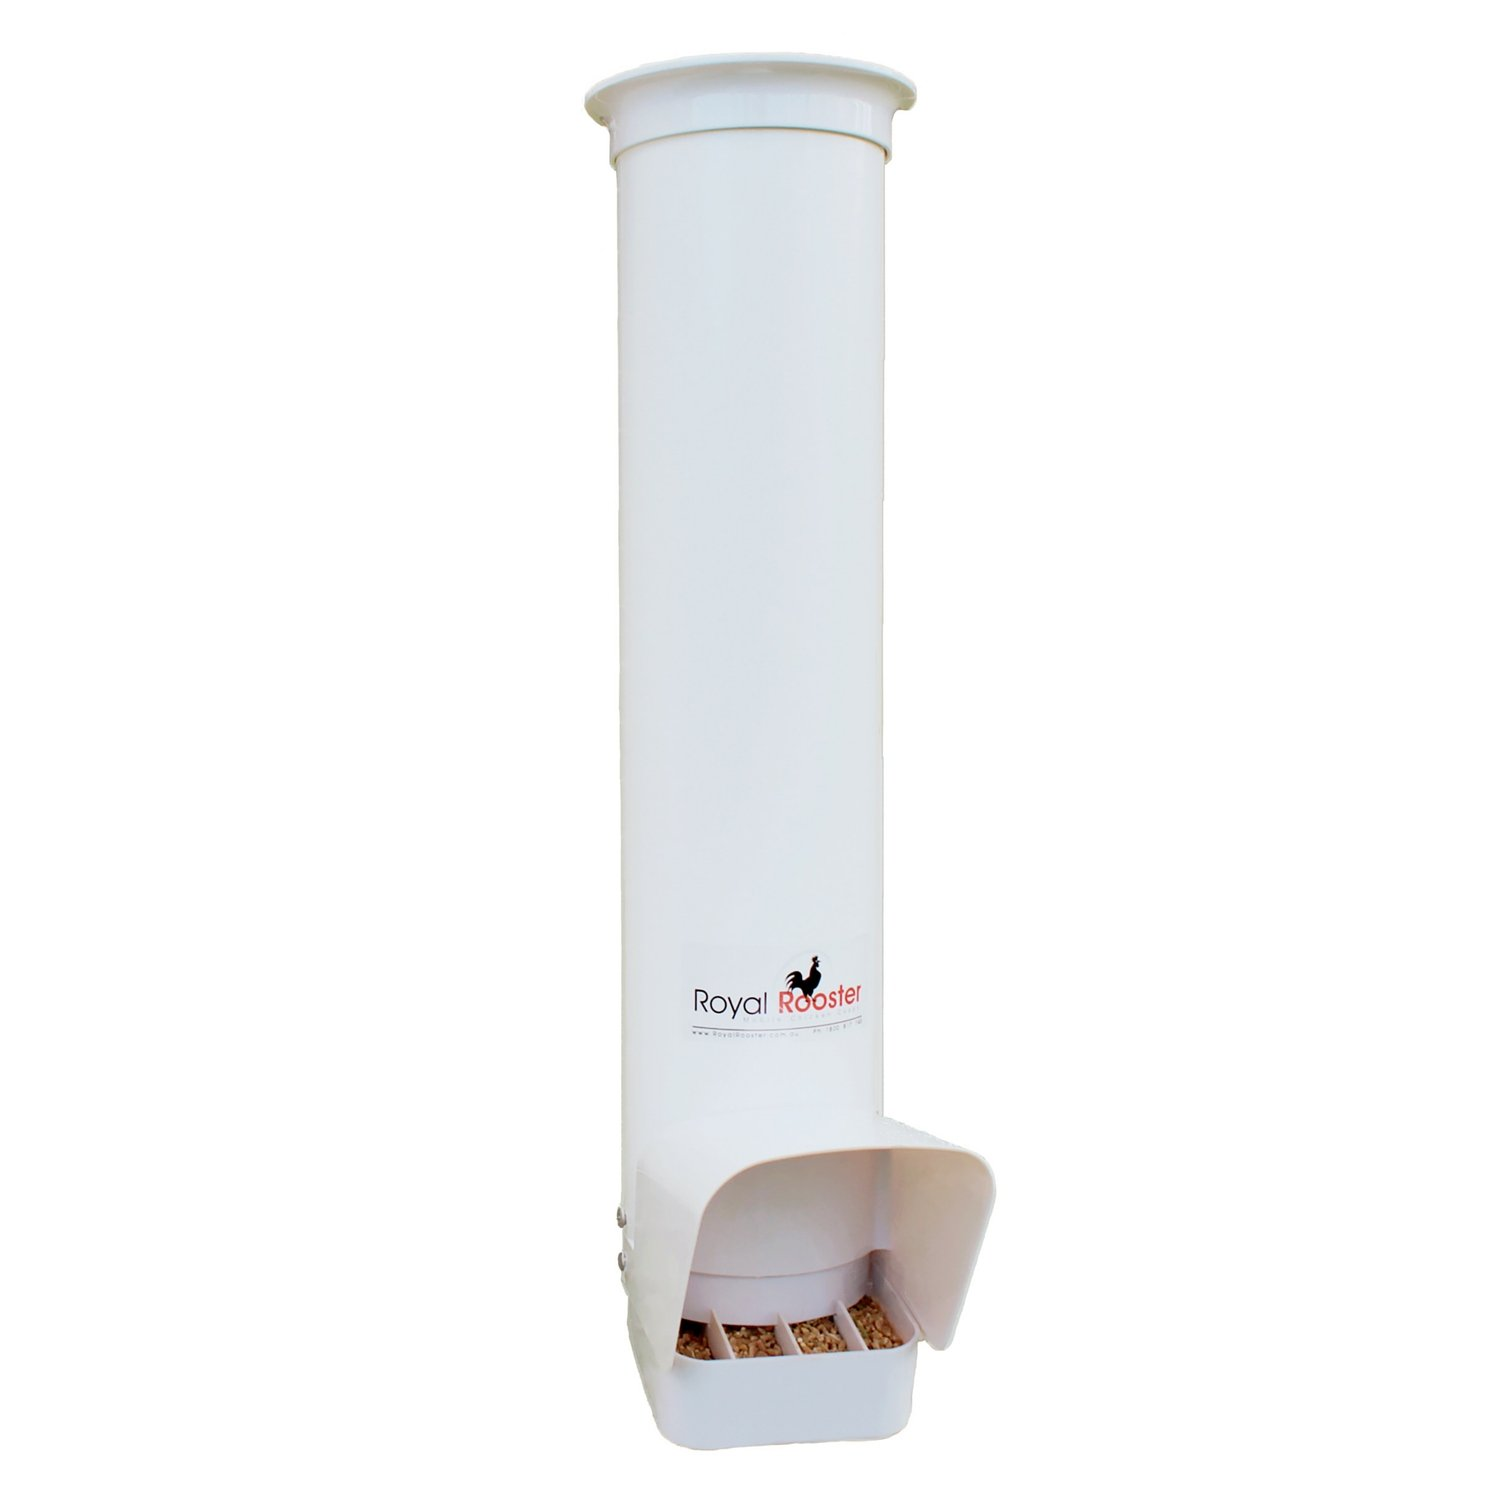 Royal Rooster Chicken Poultry Feeder with Rain Cover - 6.5 Pound Capacity by Royal Rooster